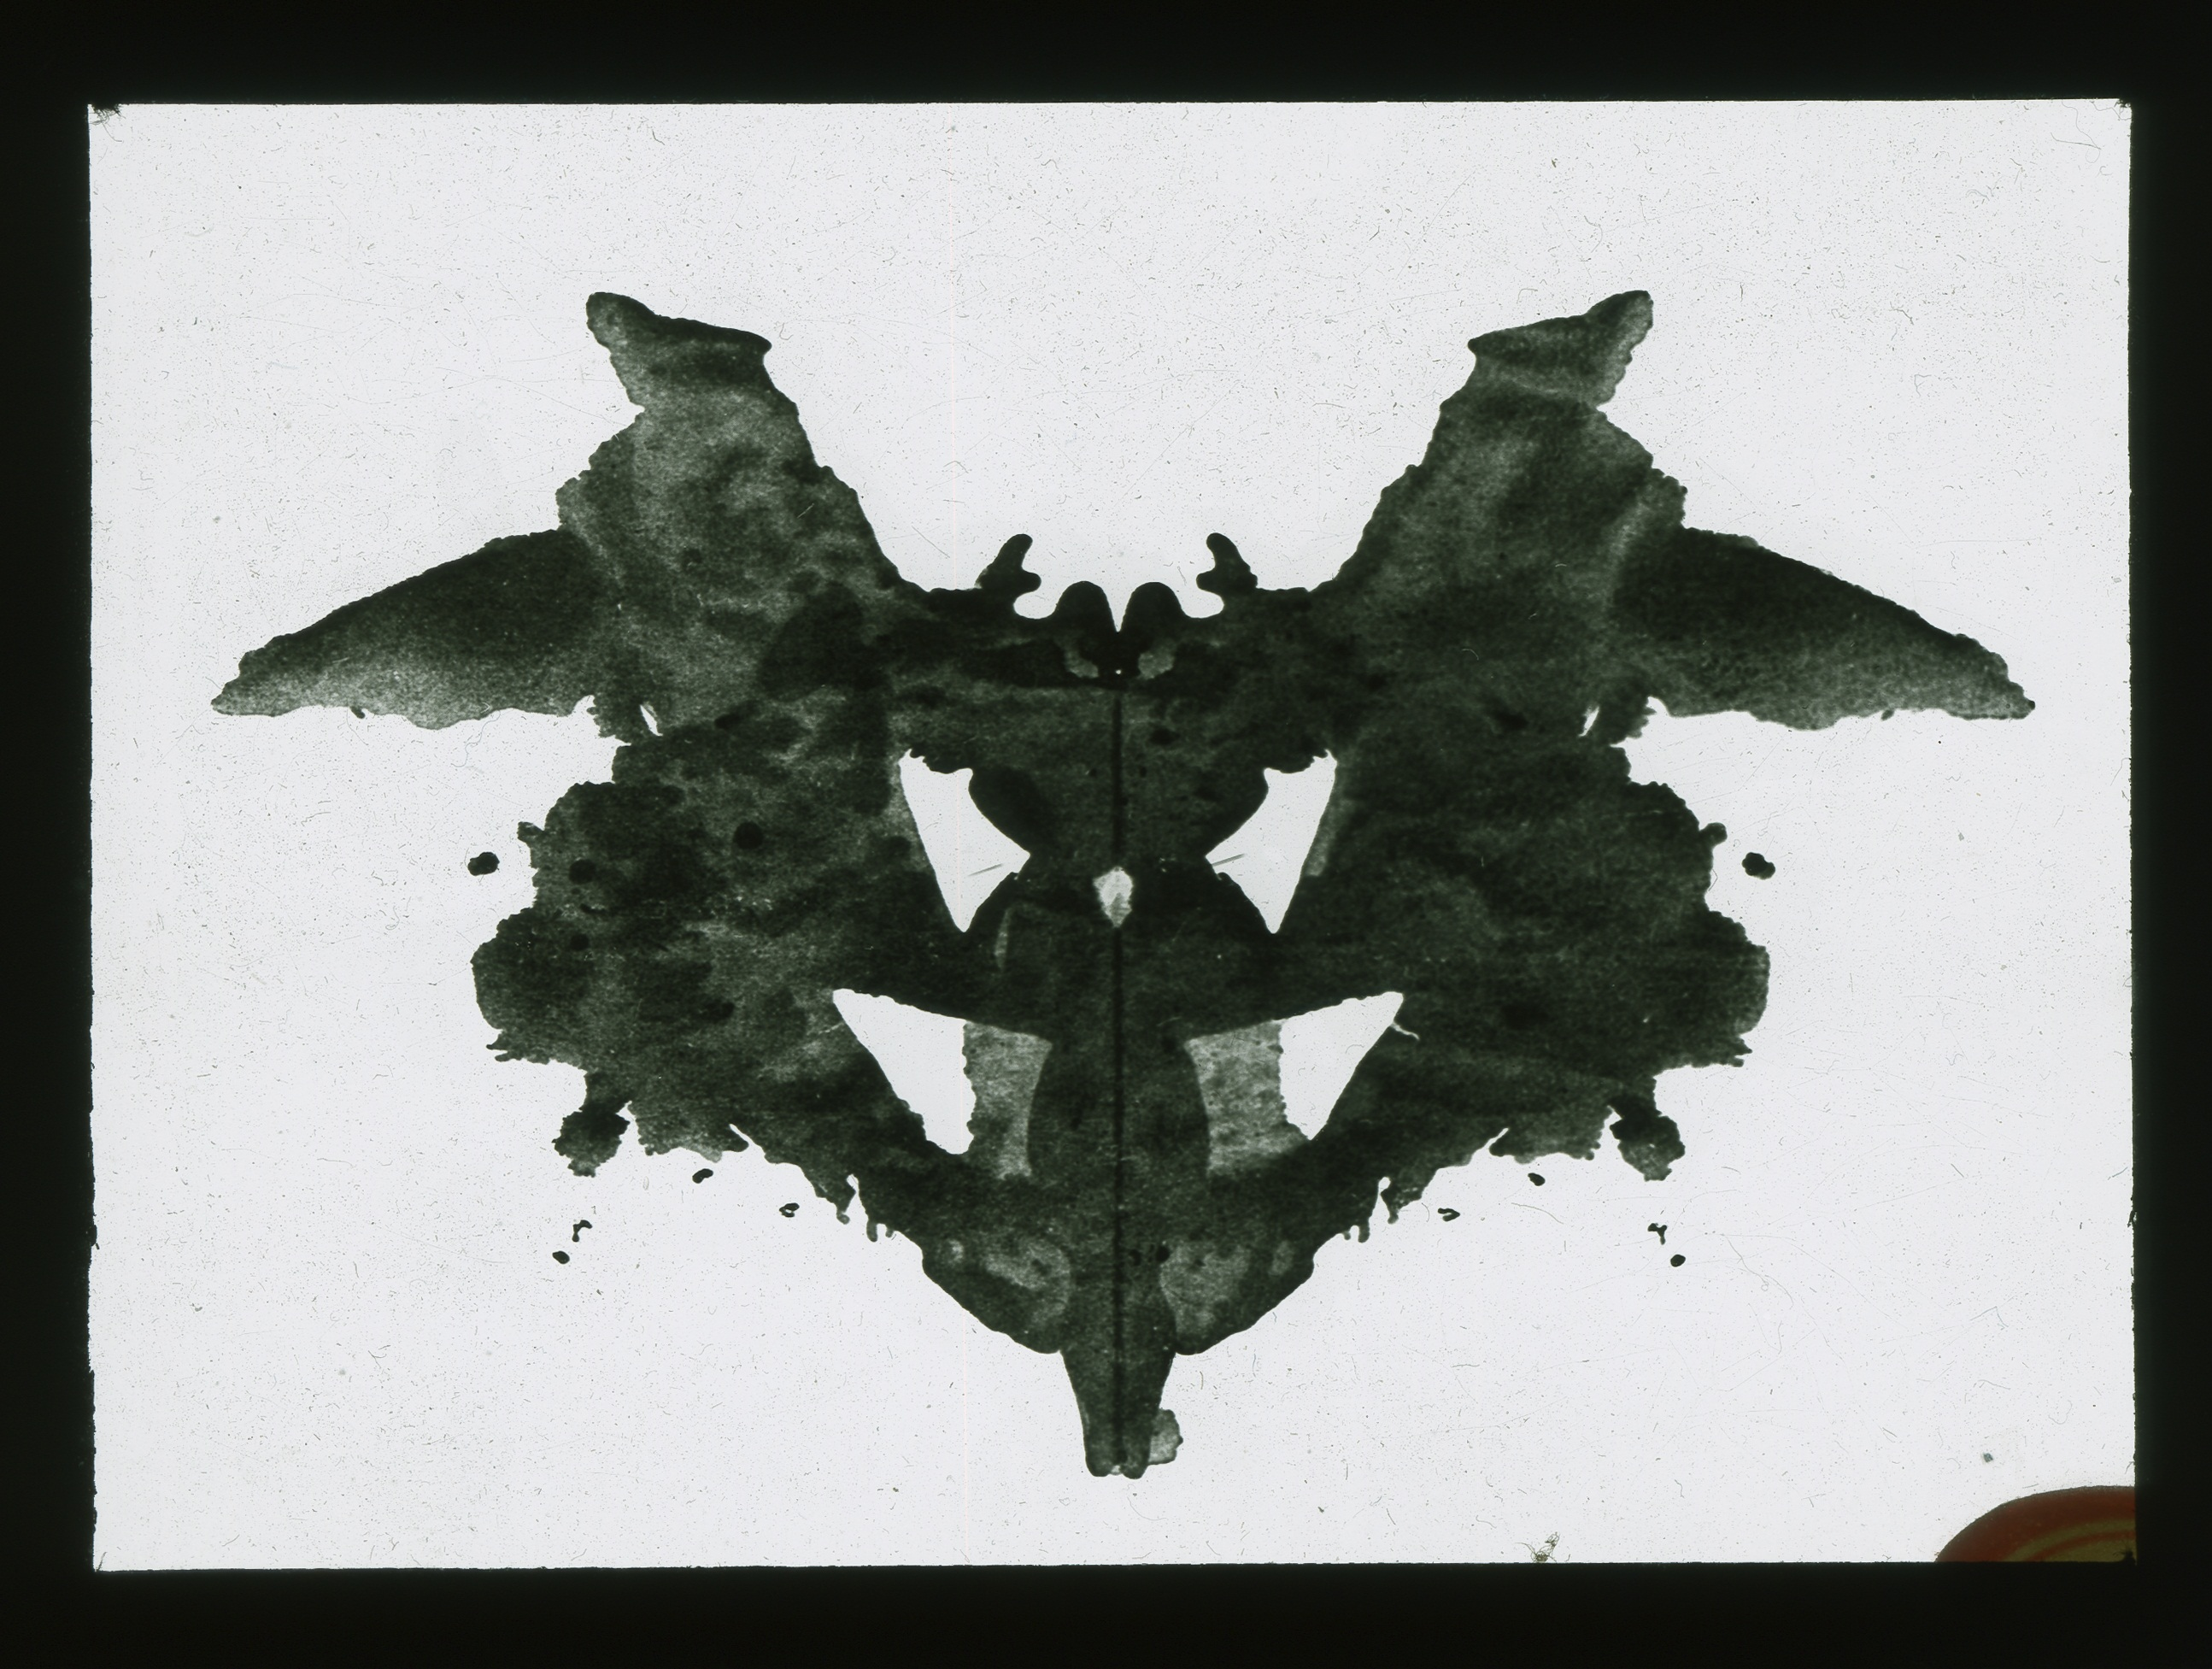 Physician named hermann rorschach developed the rorschach test one